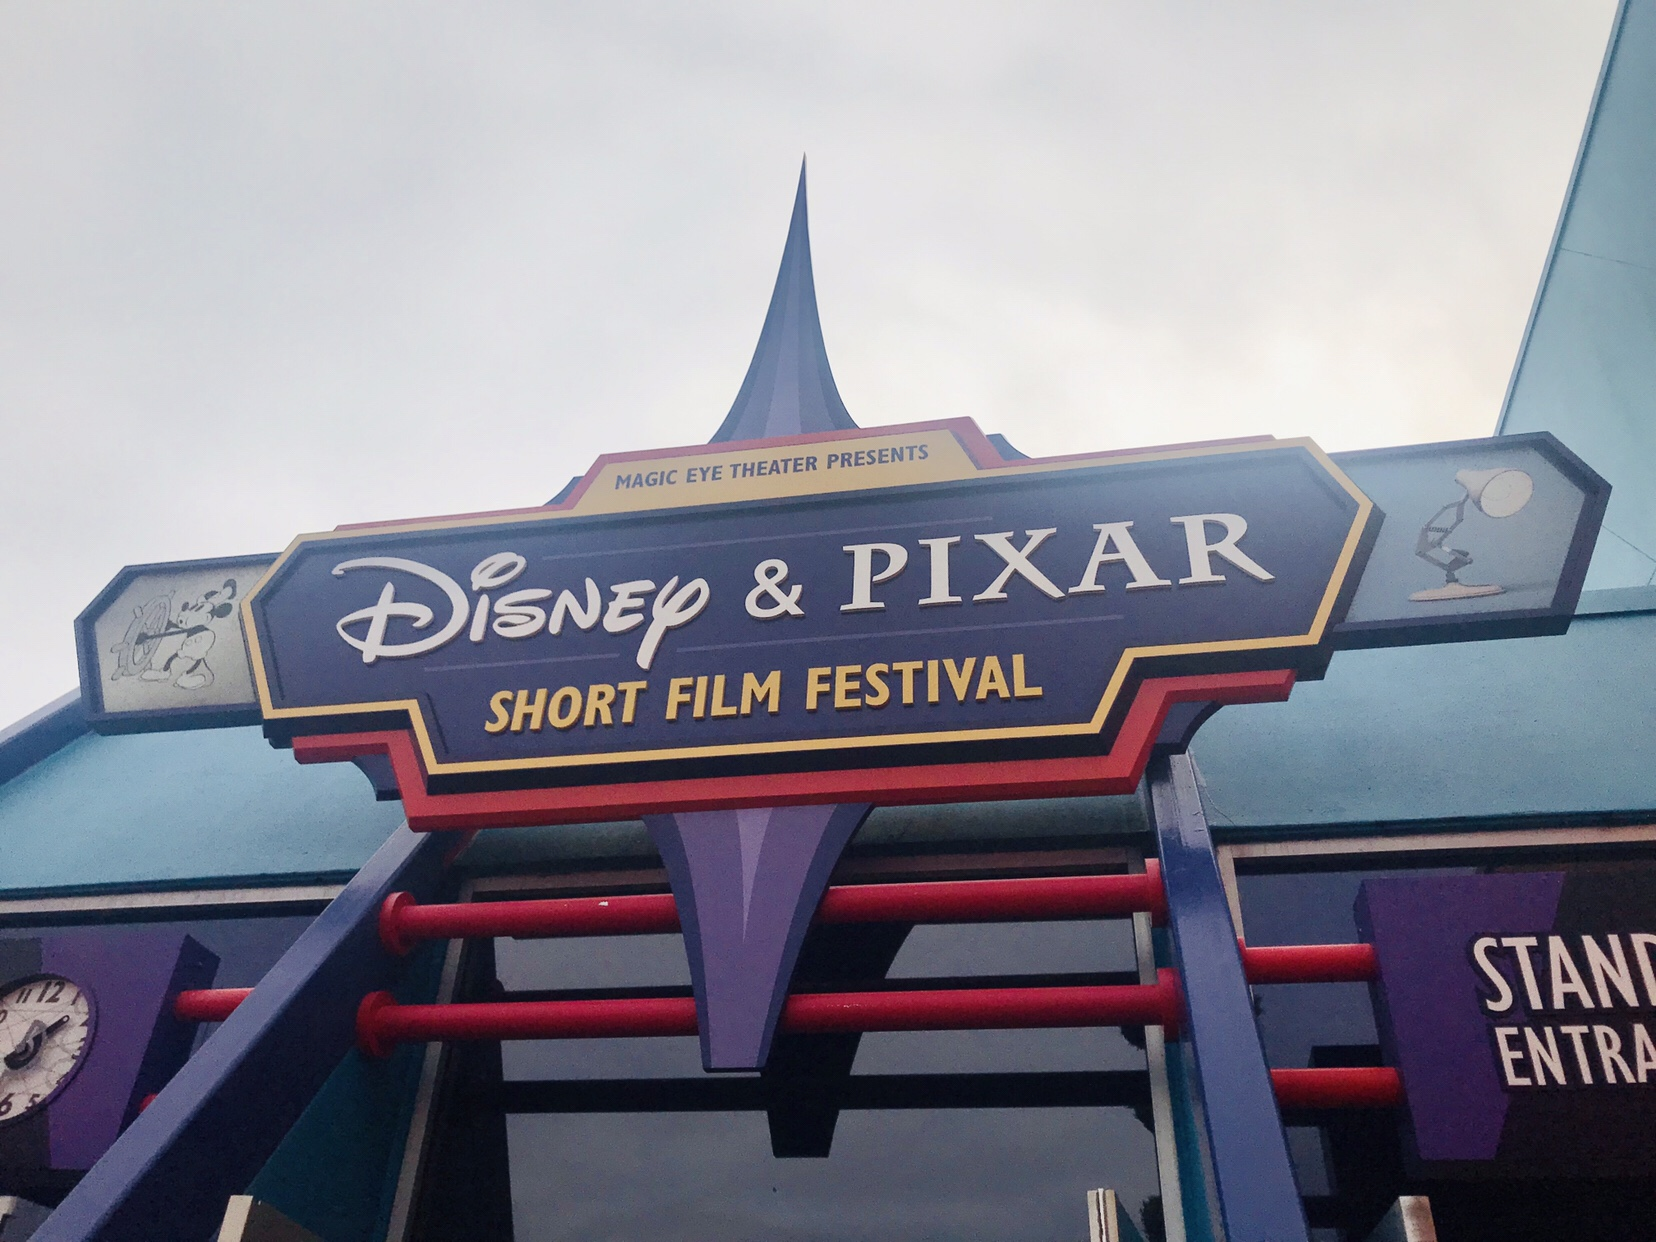 Disney and Pixar Short Film Festival at Disney World Epcot on the touring plan